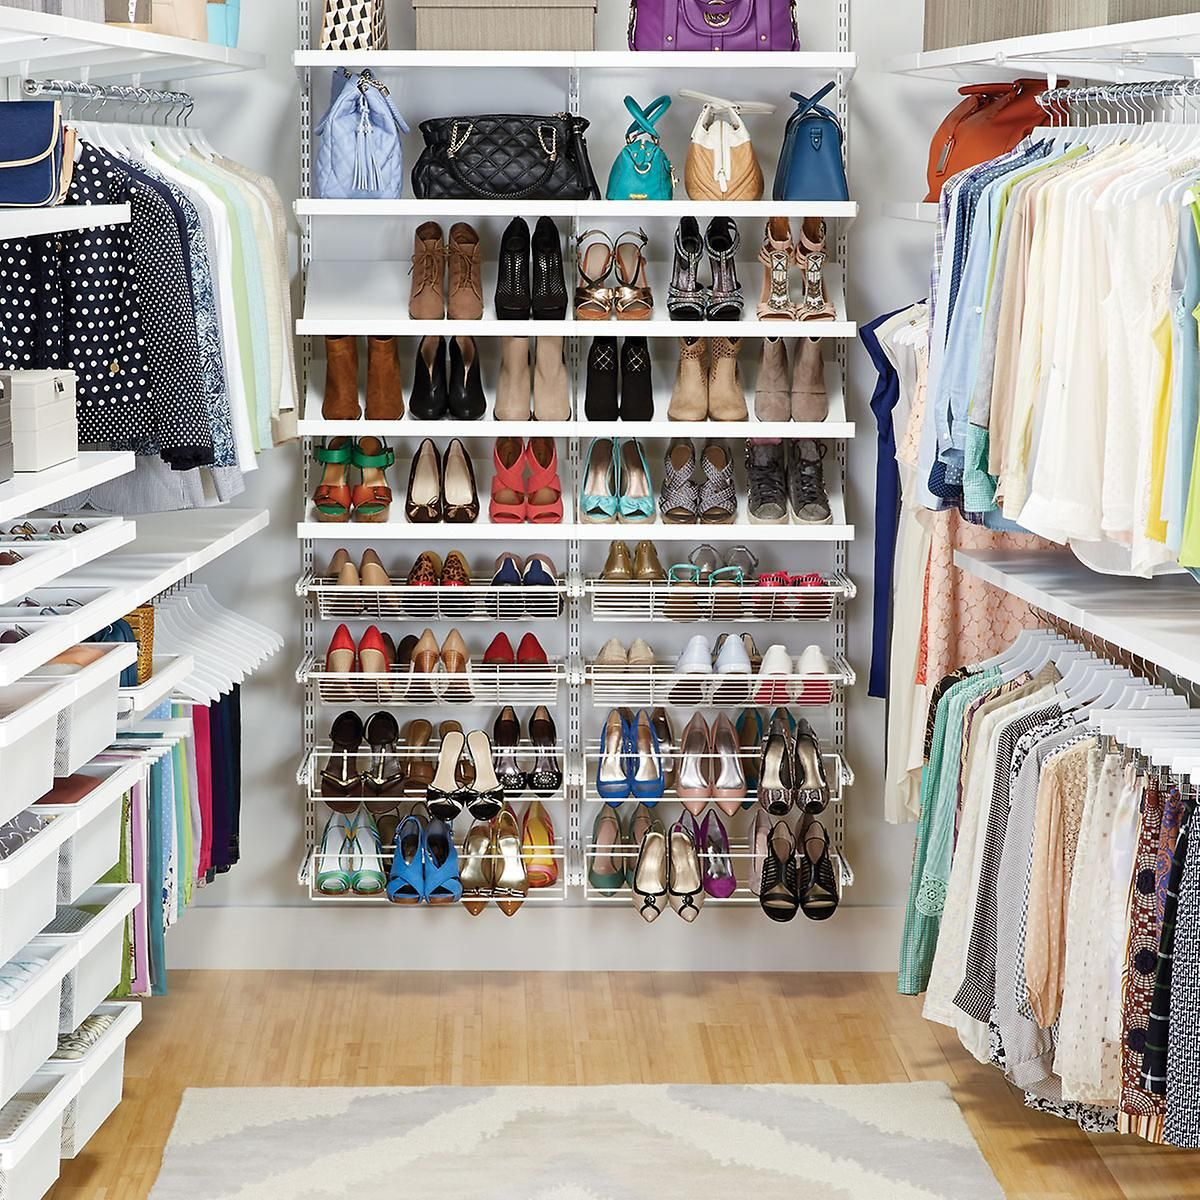 Best Kitchen Gallery: White Elfa Décor Walk In Clothes Closet The Container Store Home of Container Store Home  on rachelxblog.com